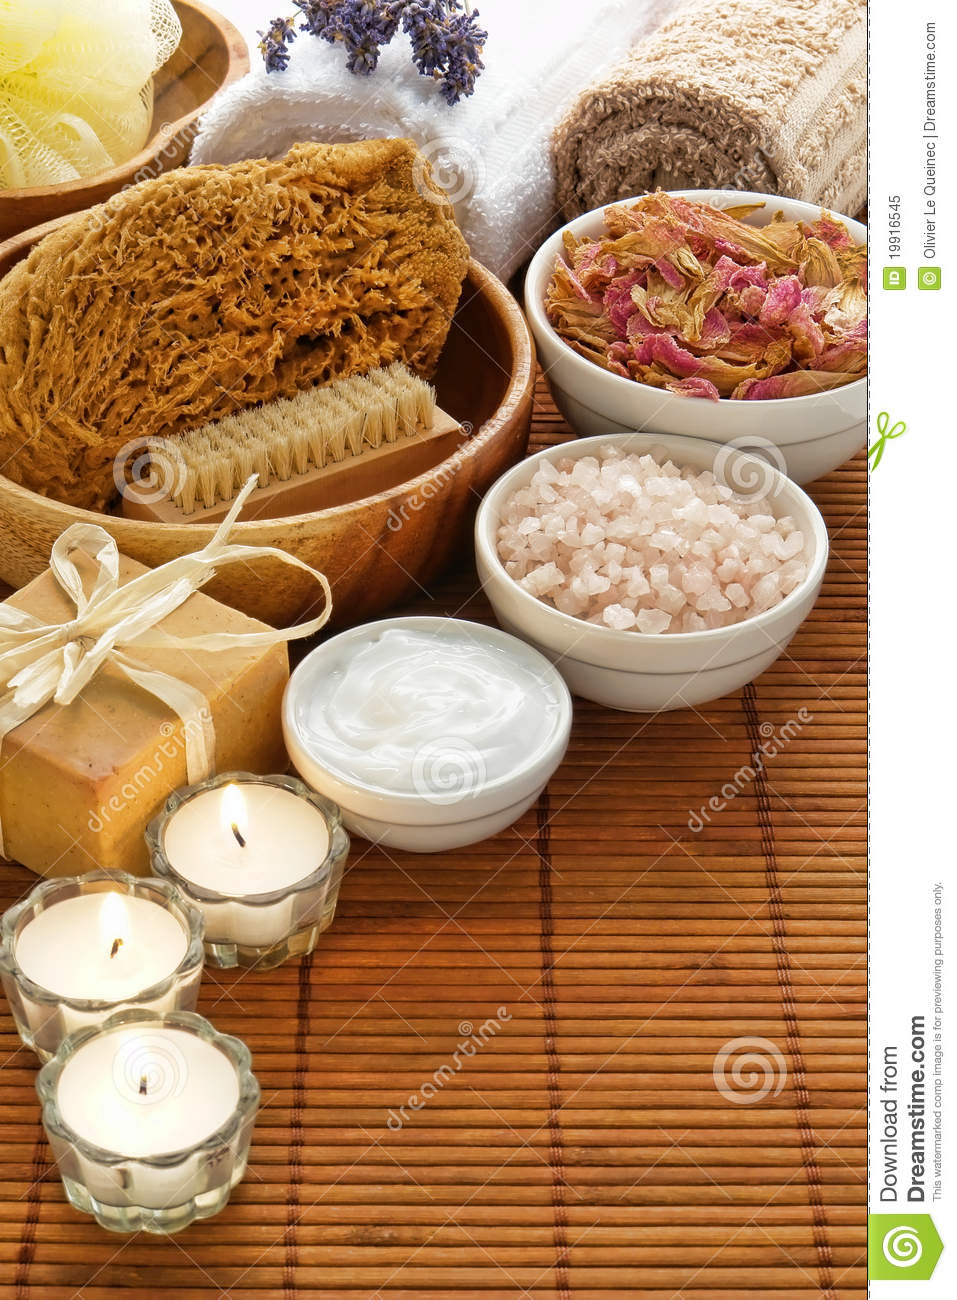 Aromatherapy and Relaxation Spa Body Care Products